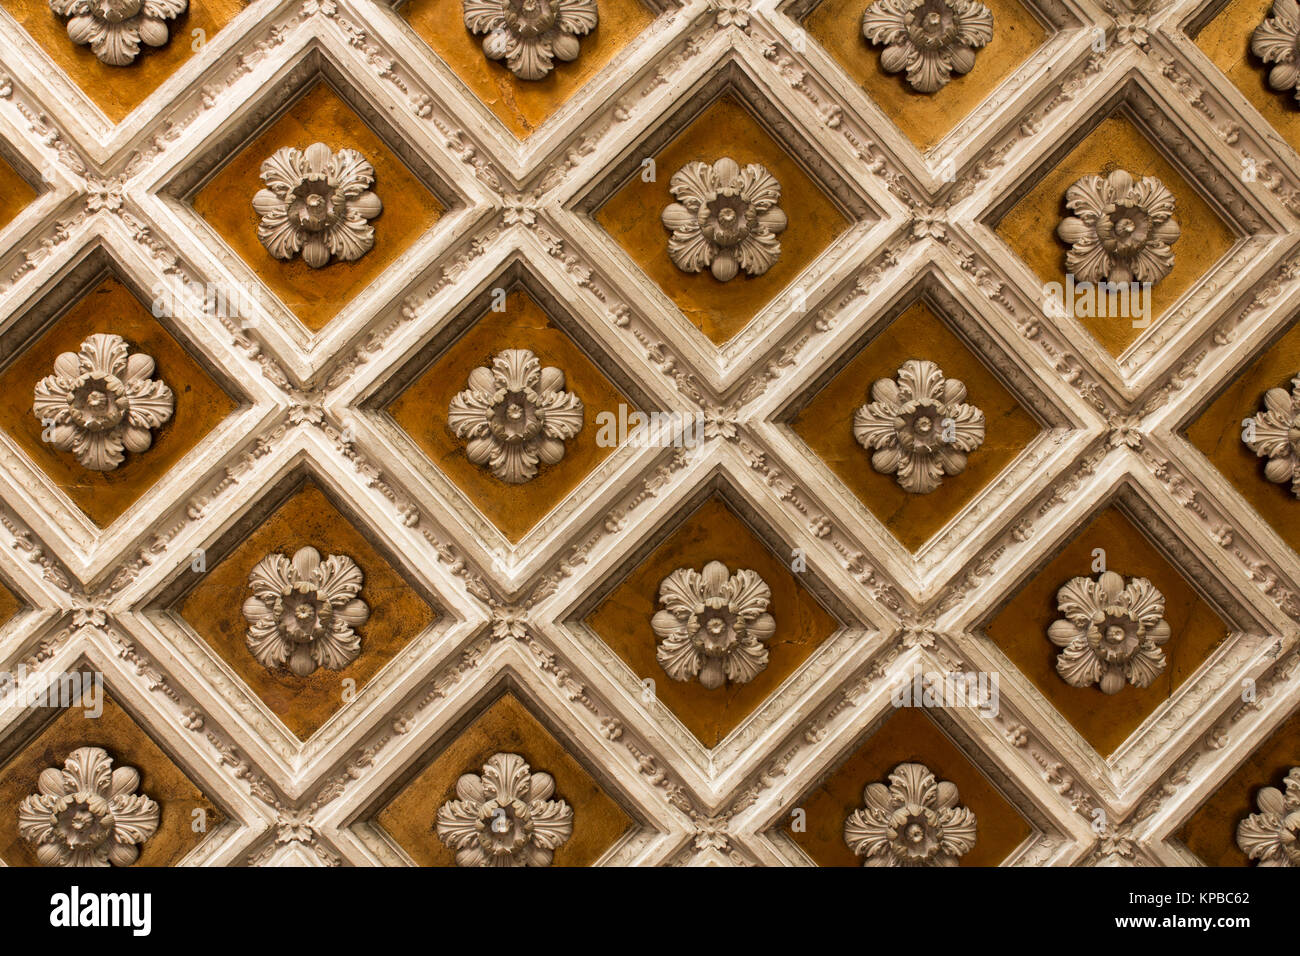 Antique wooden ornamentet ceiling - Stock Image